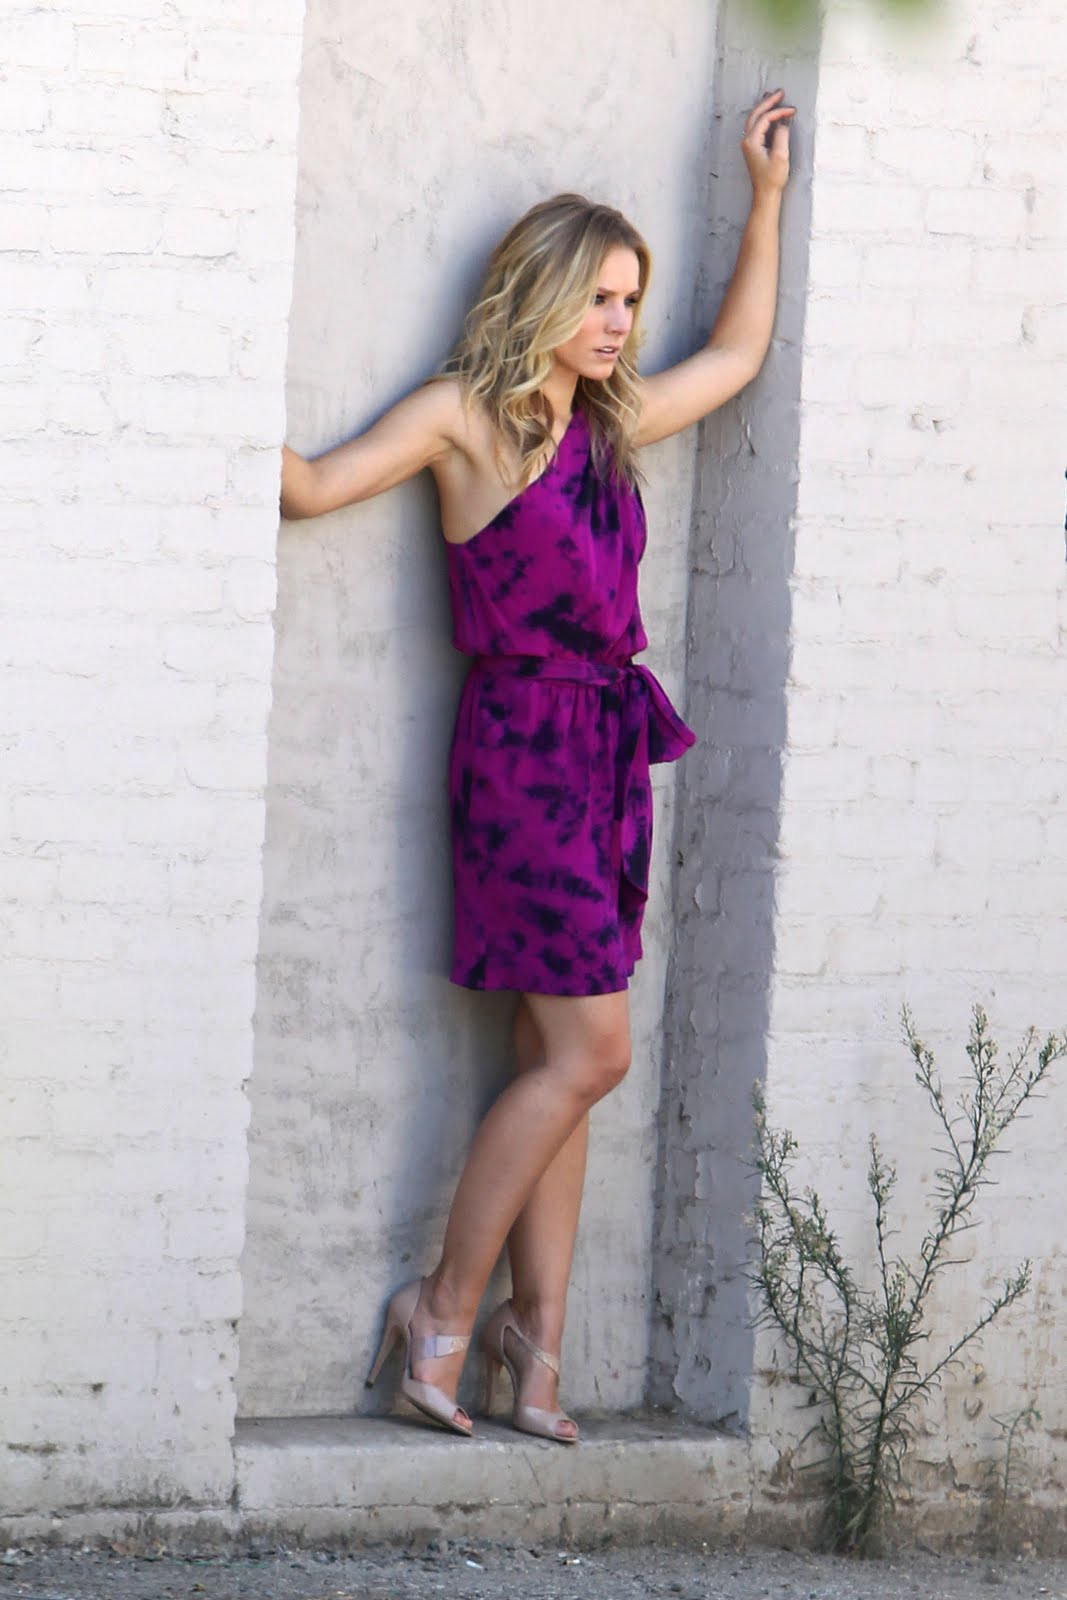 http://1.bp.blogspot.com/_6A8j2EQmANk/TJCSFxbDhSI/AAAAAAAAPxQ/h_AVz5olwtw/s1600/Kristen+Bell+is+Looking+Hot+in+Purple+Dress4.jpg